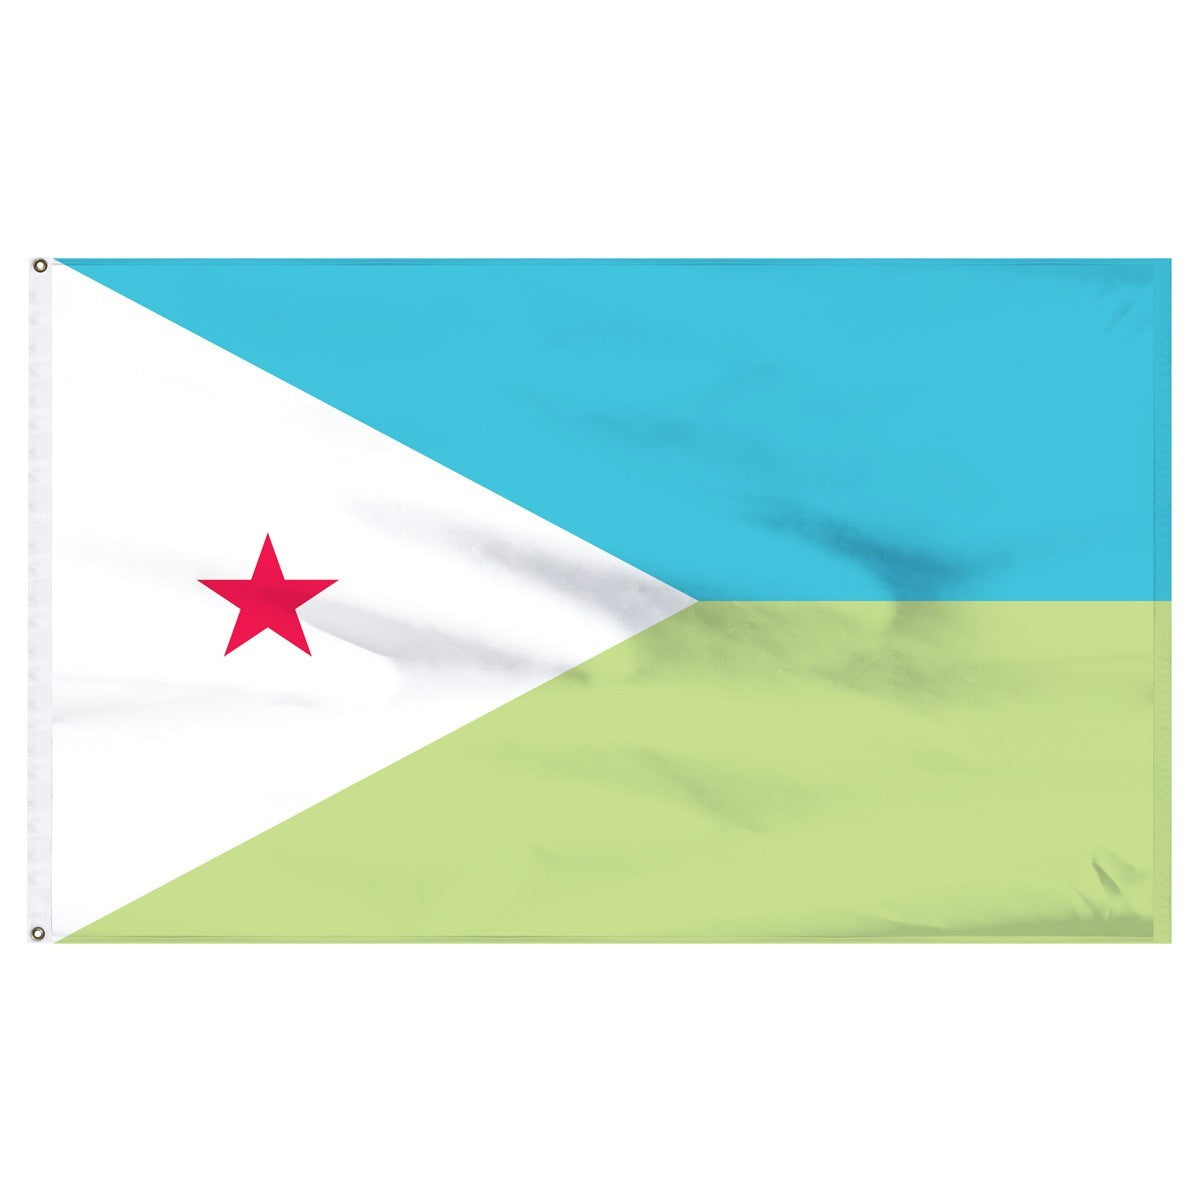 Djibouti 3' x 5' Outdoor Nylon Flag